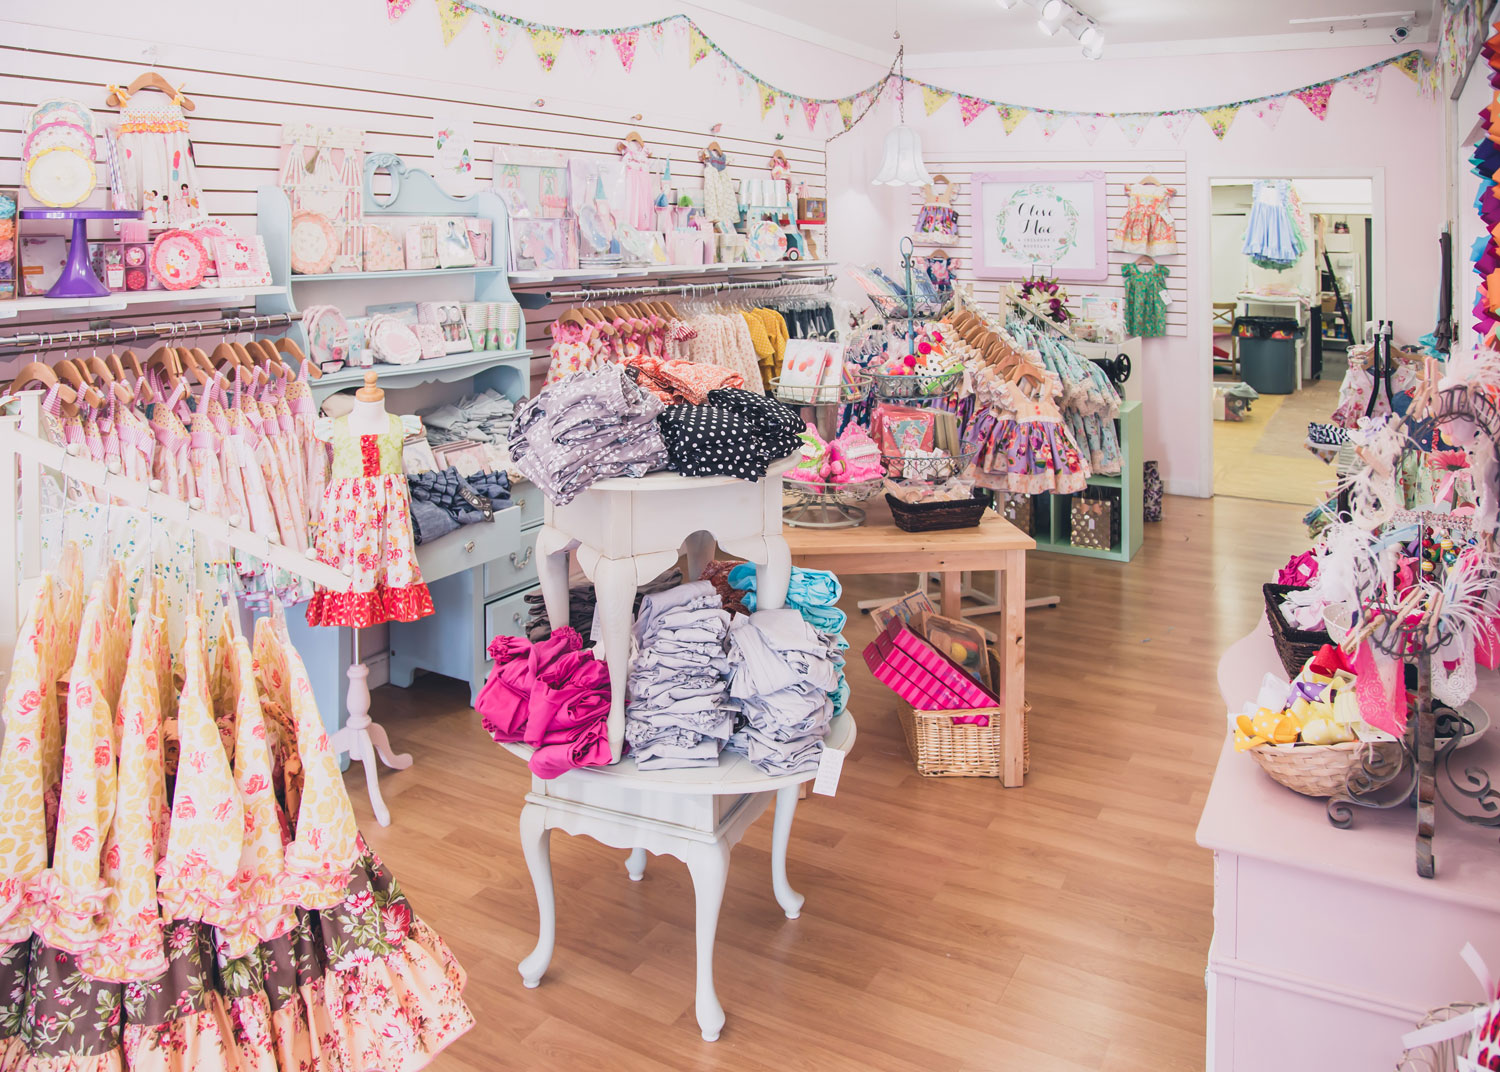 OLIVE-MAE-GIRLS-CLOTHING-PLANO-MAGAZINE-INTERIOR